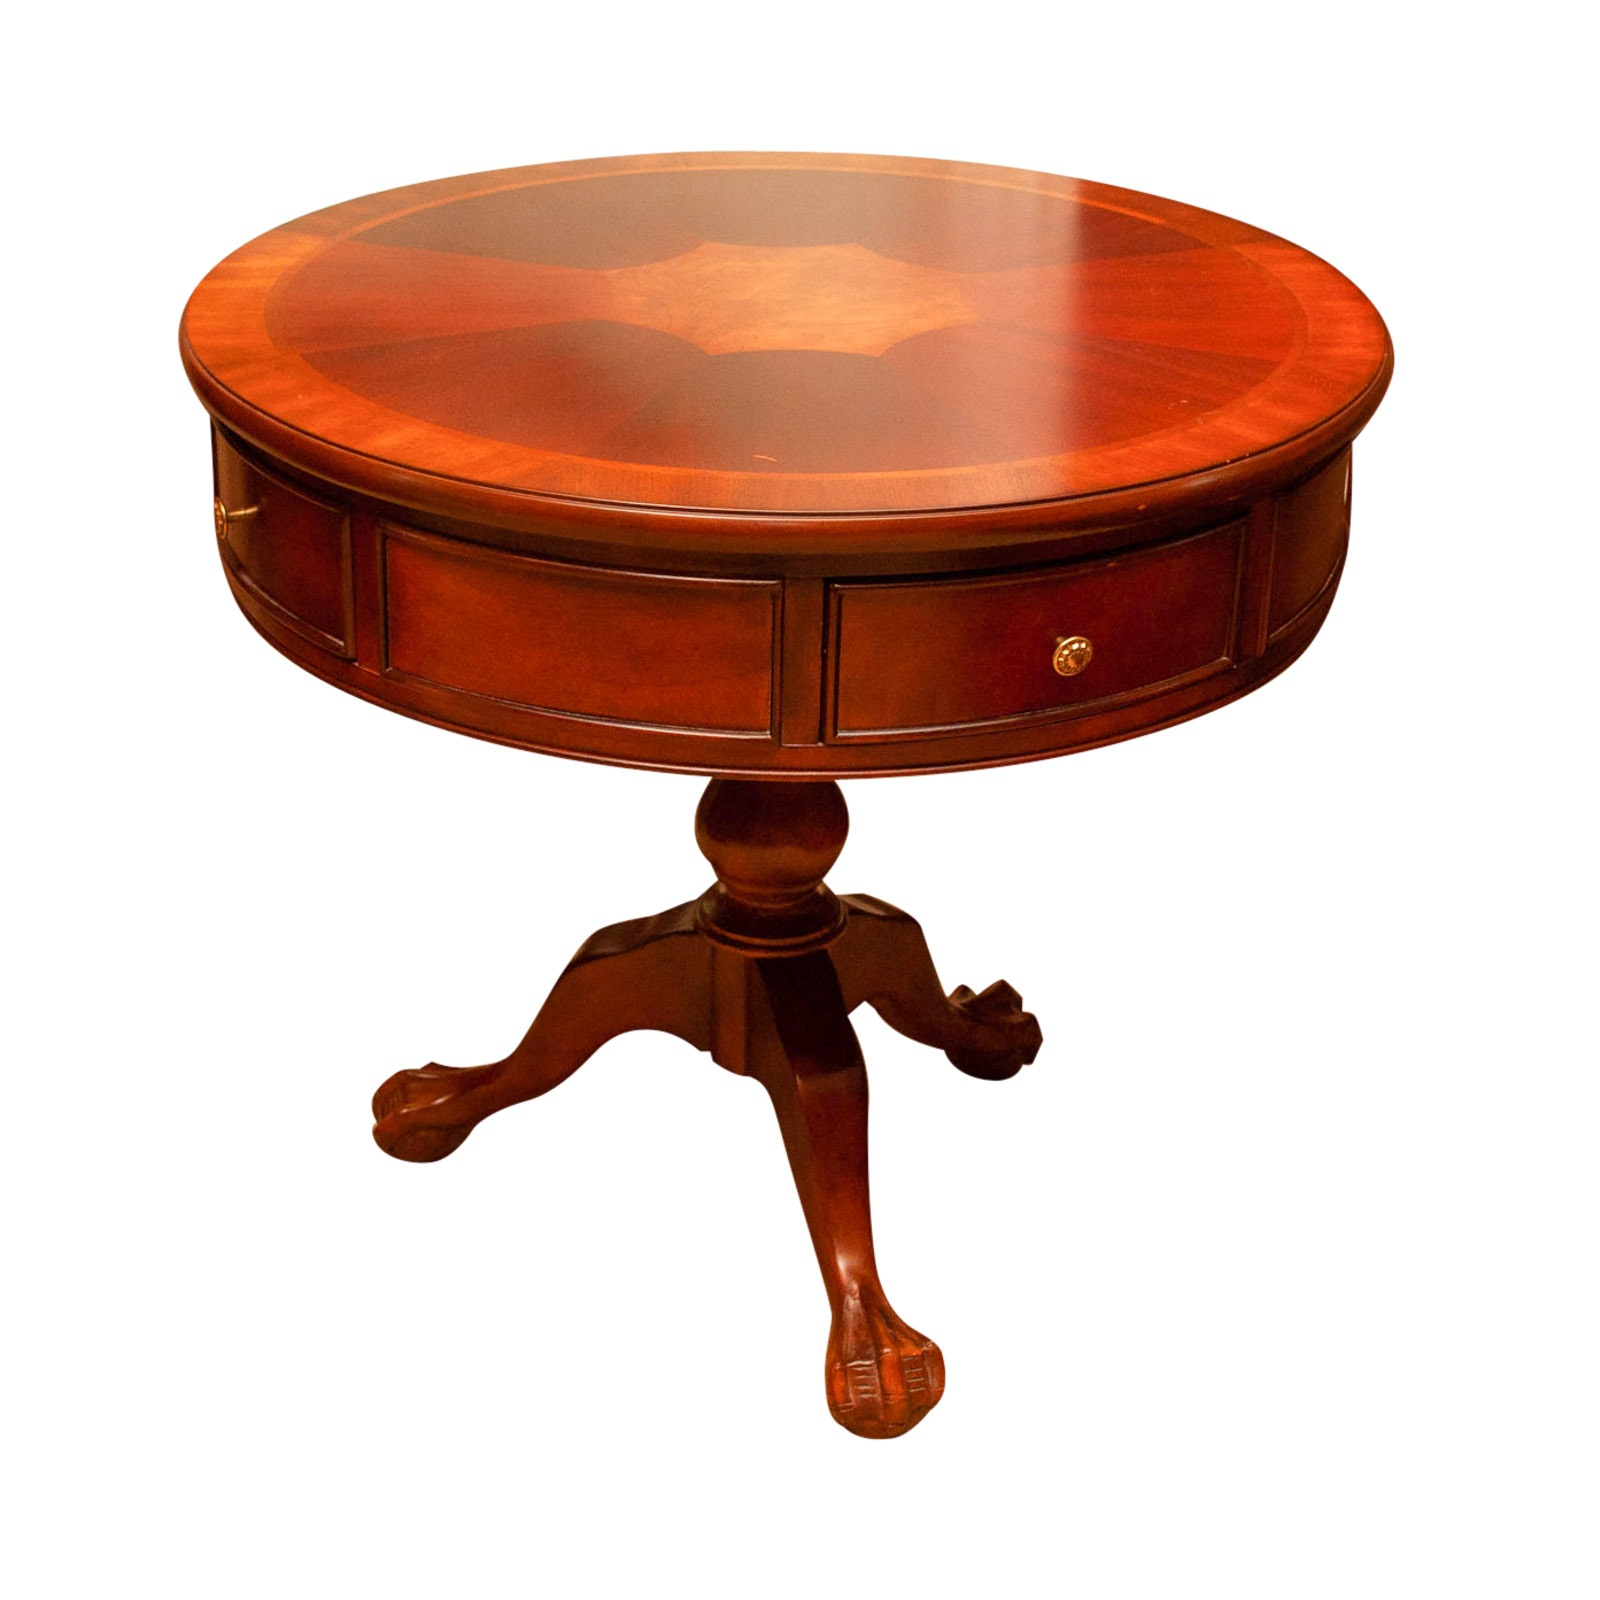 Federal Style Mahogany and Parquetry Drum Table, Late 20th Century